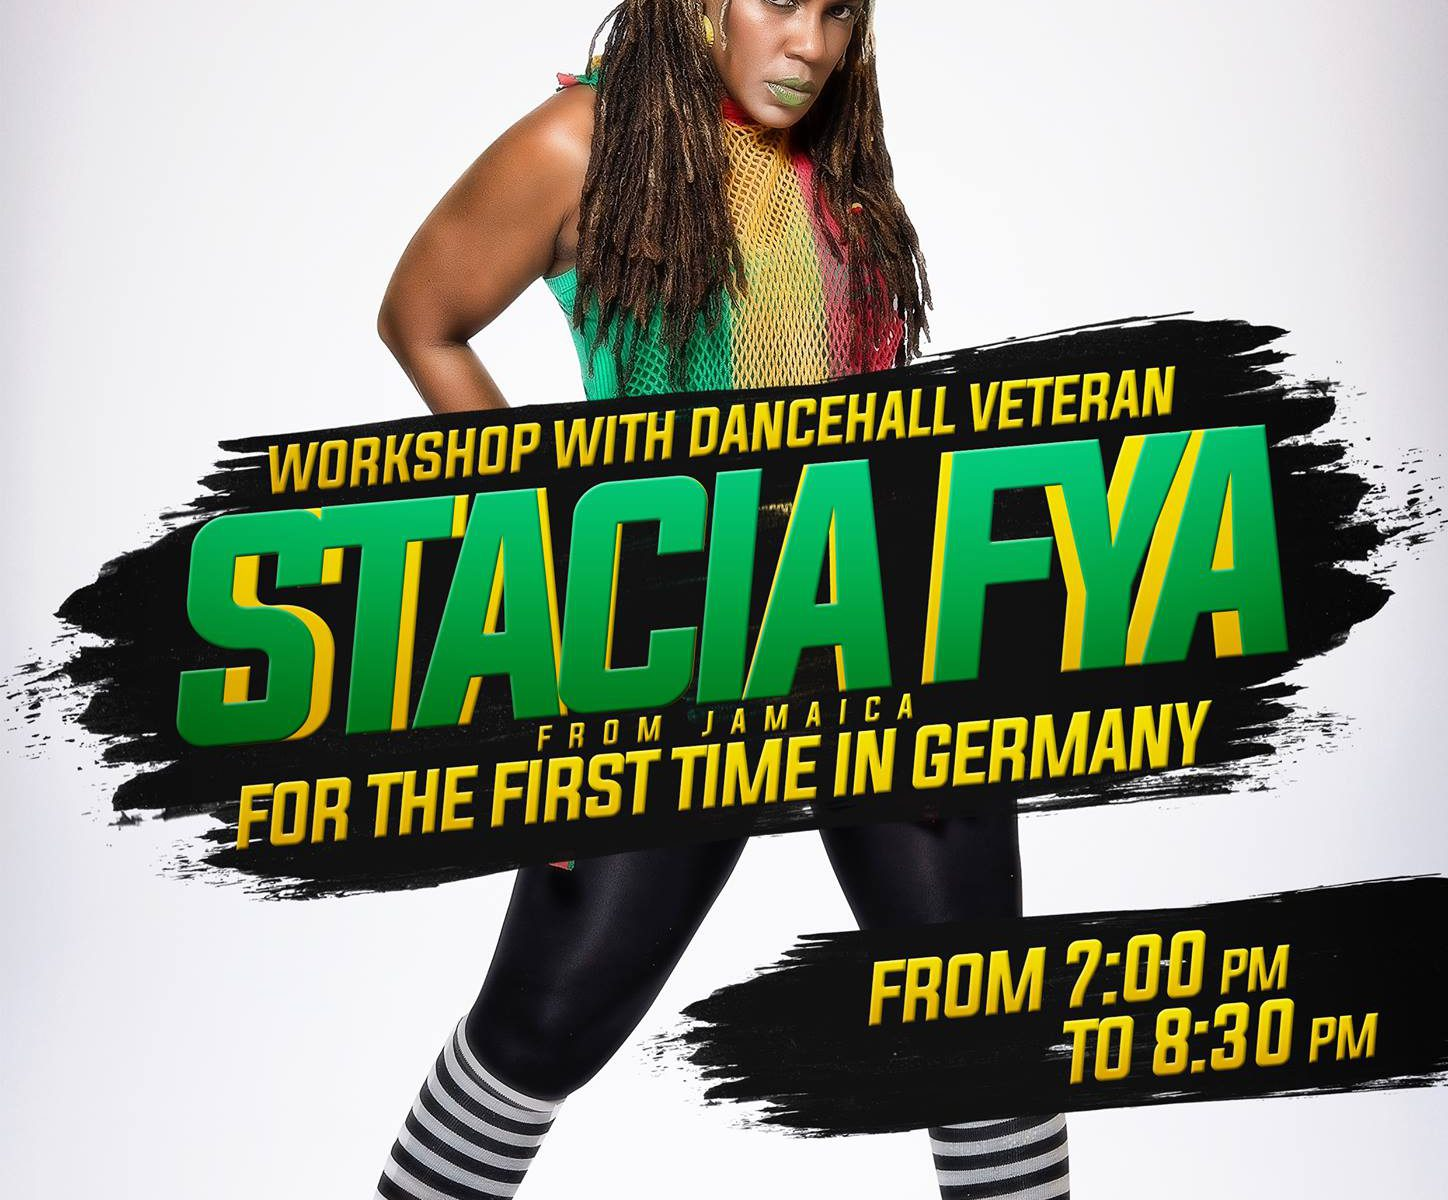 Dancehall Workshop mit Stacia Fya